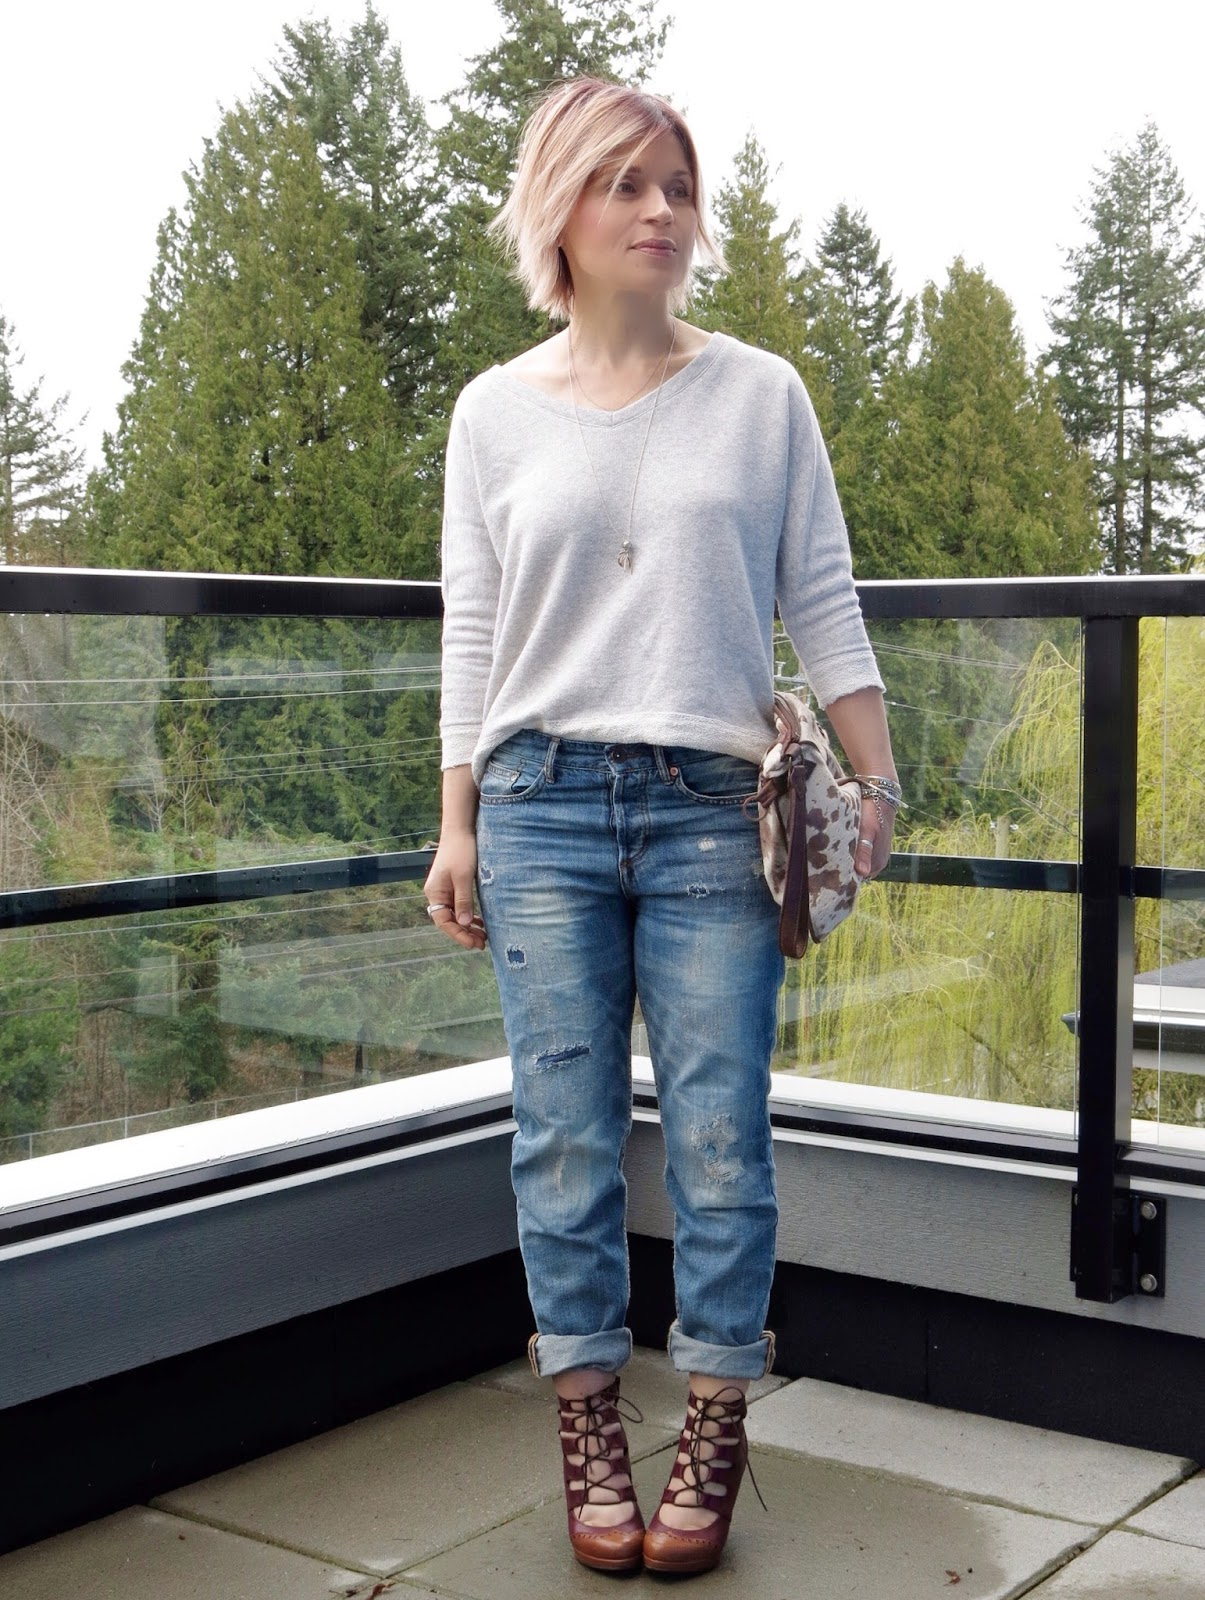 styling boyfriend jeans with a v-neck sweatshirt, pony hair bag, and lace-up heels